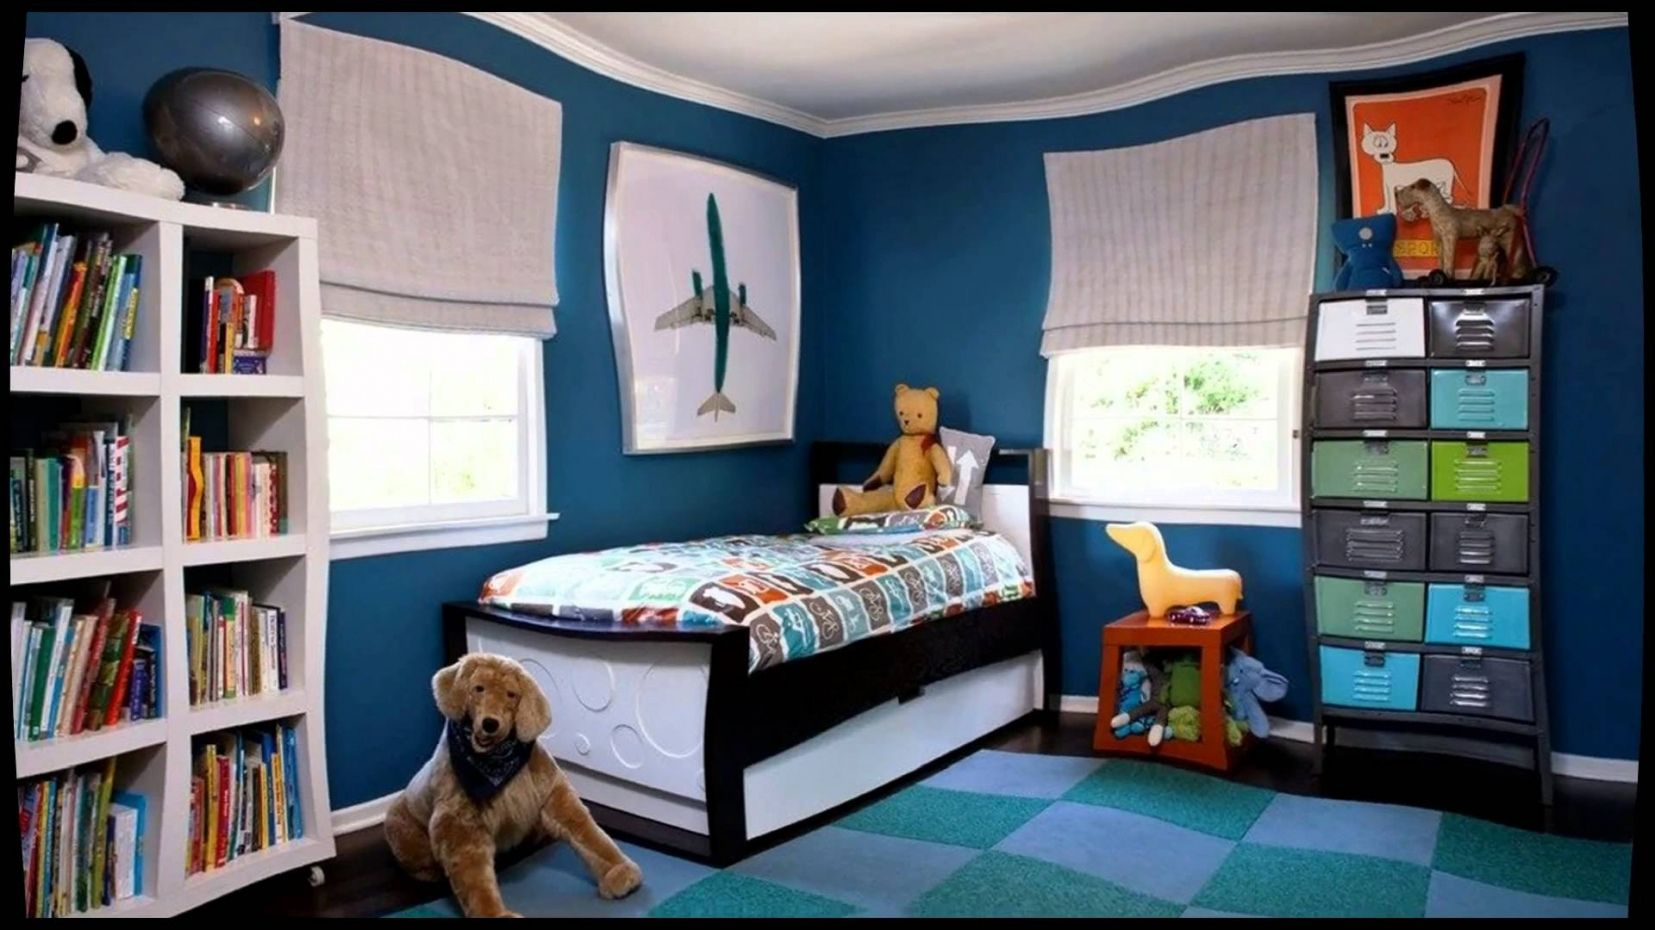 20 3 year old boy room ideas ideas to decorate bedroom check more at